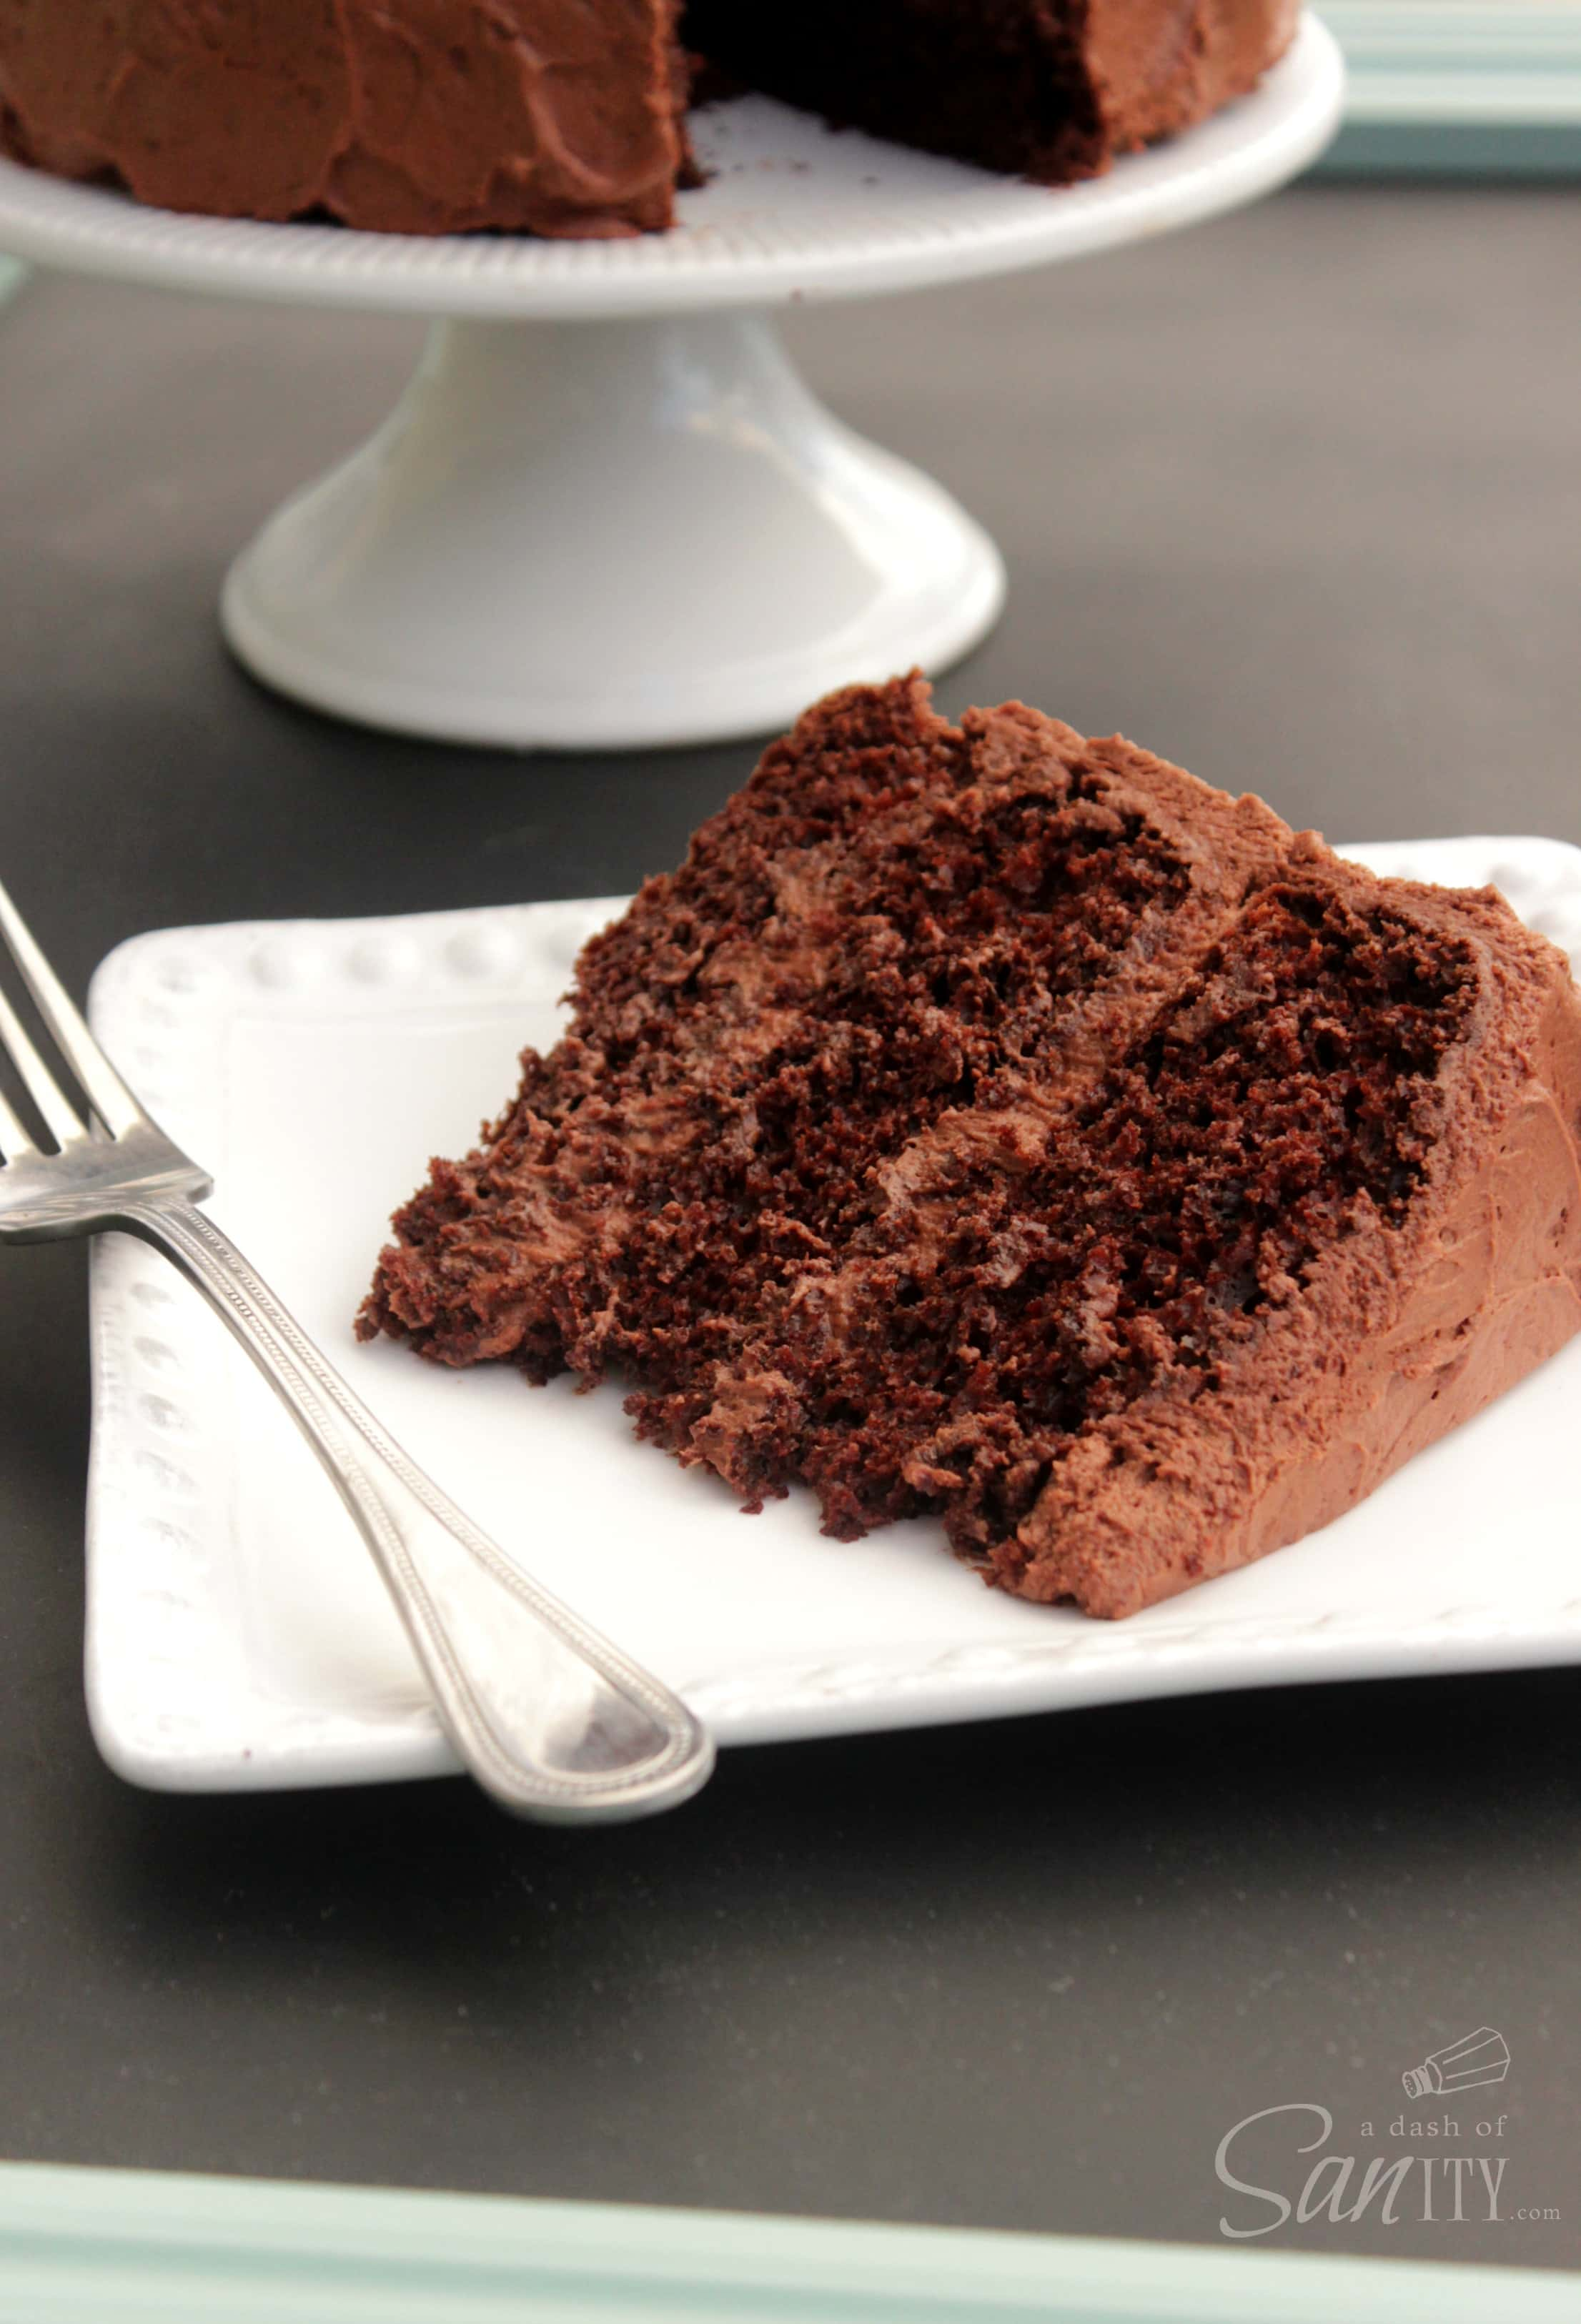 Best Ever Chocolate Layer Cake is a rich, moist, triple layered chocolate cake with a rich and creamy chocolate buttercream frosting.